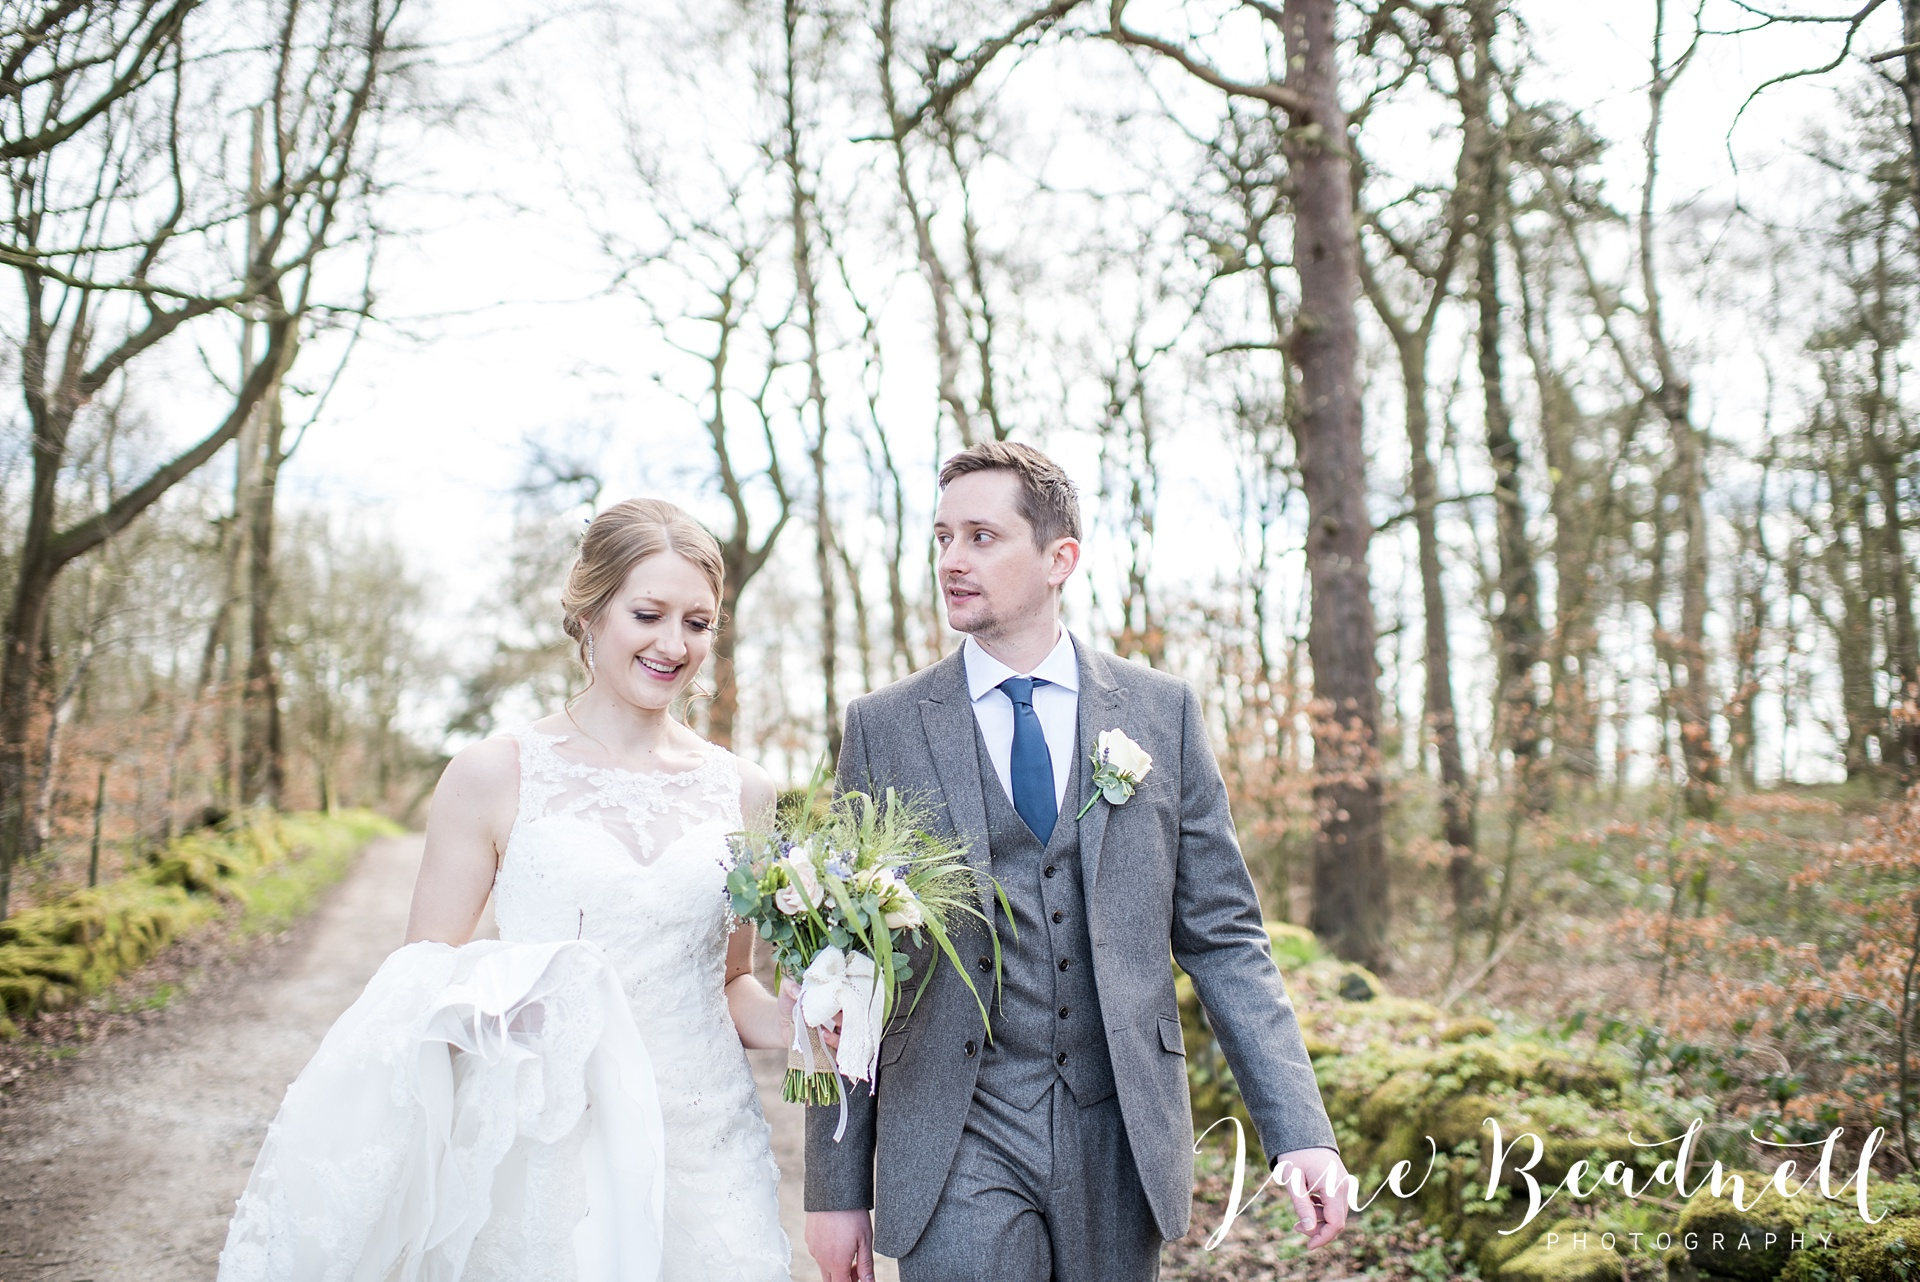 Otley Chevin Lodge wedding photography by Jane Beadnell Photography Leeds_0117